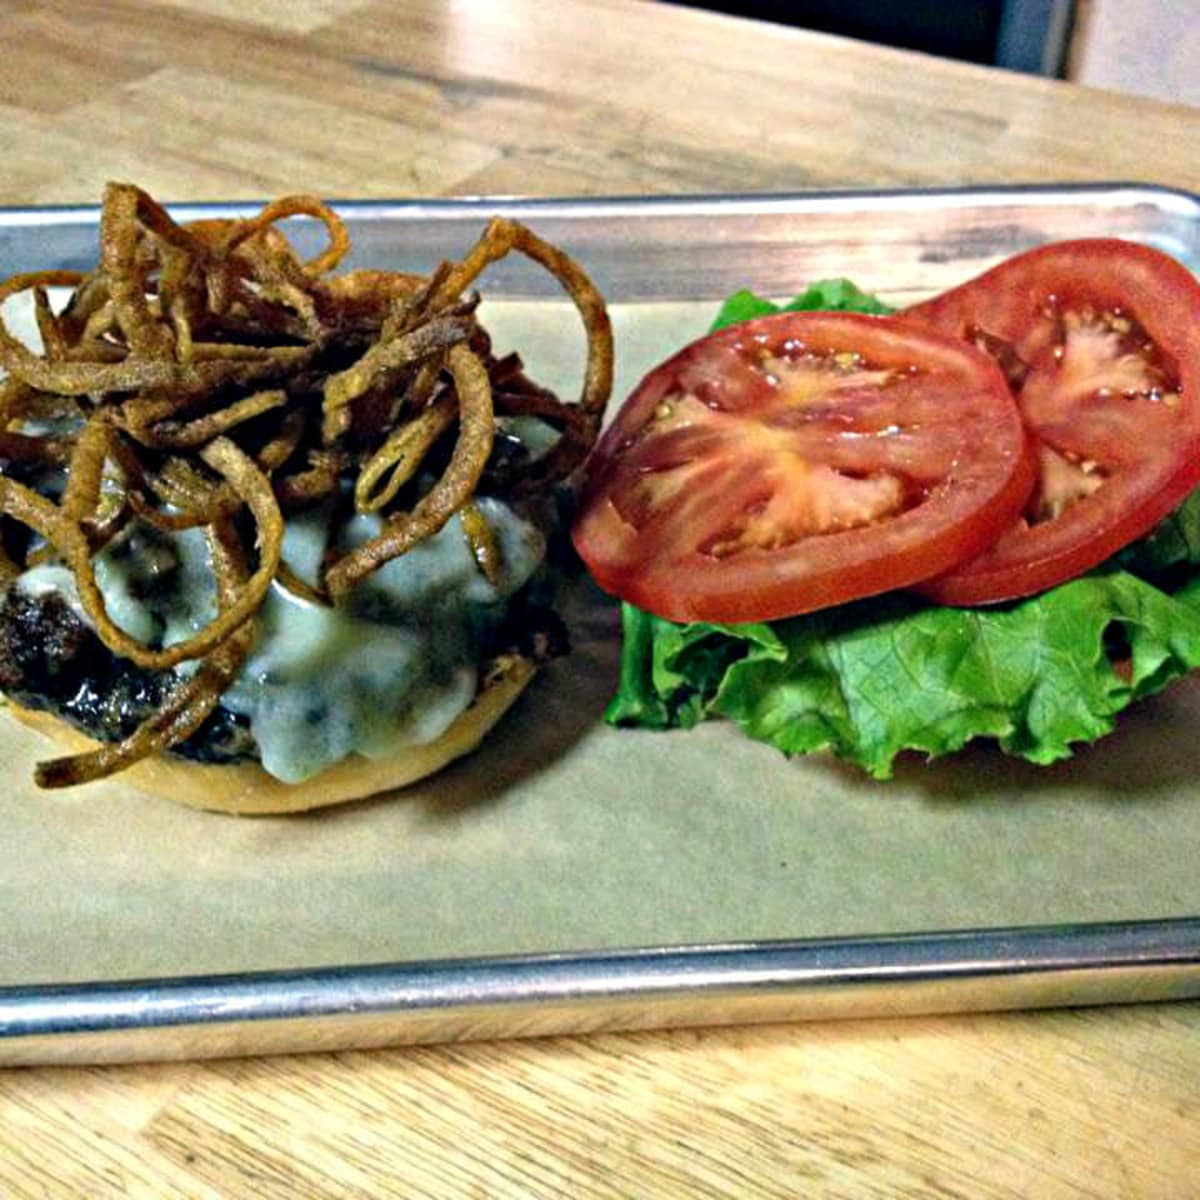 Off Site Kitchen Dallas Tx: Get Your Grub On With The 5 Best Burgers In Dallas